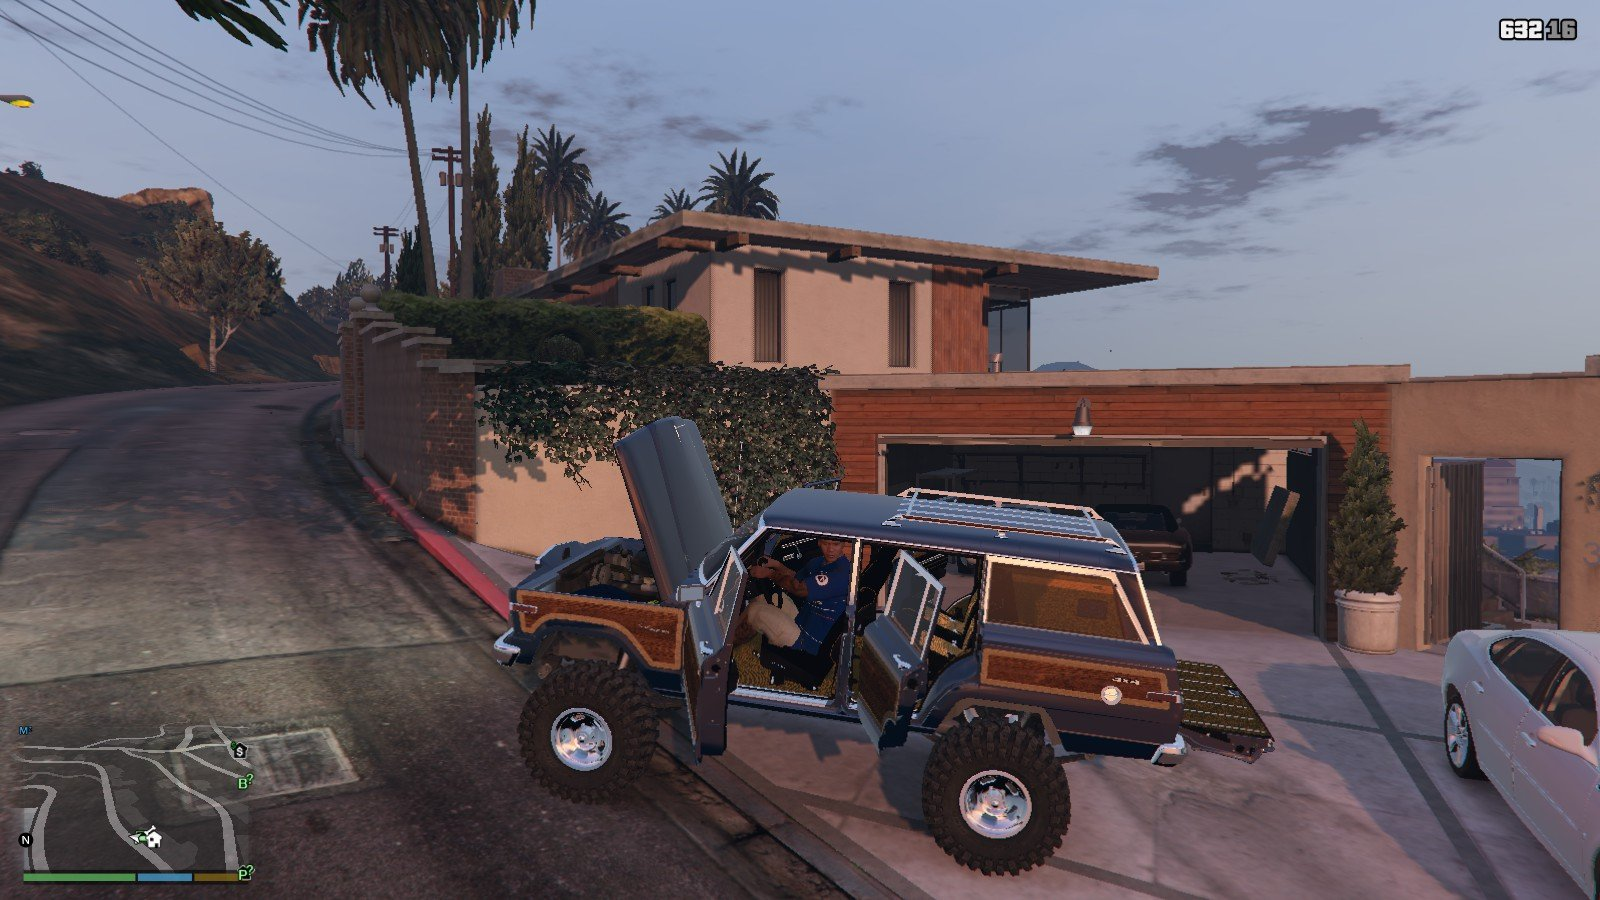 1990 Jeep Grand Wagoneer GTA5 Mods (6)